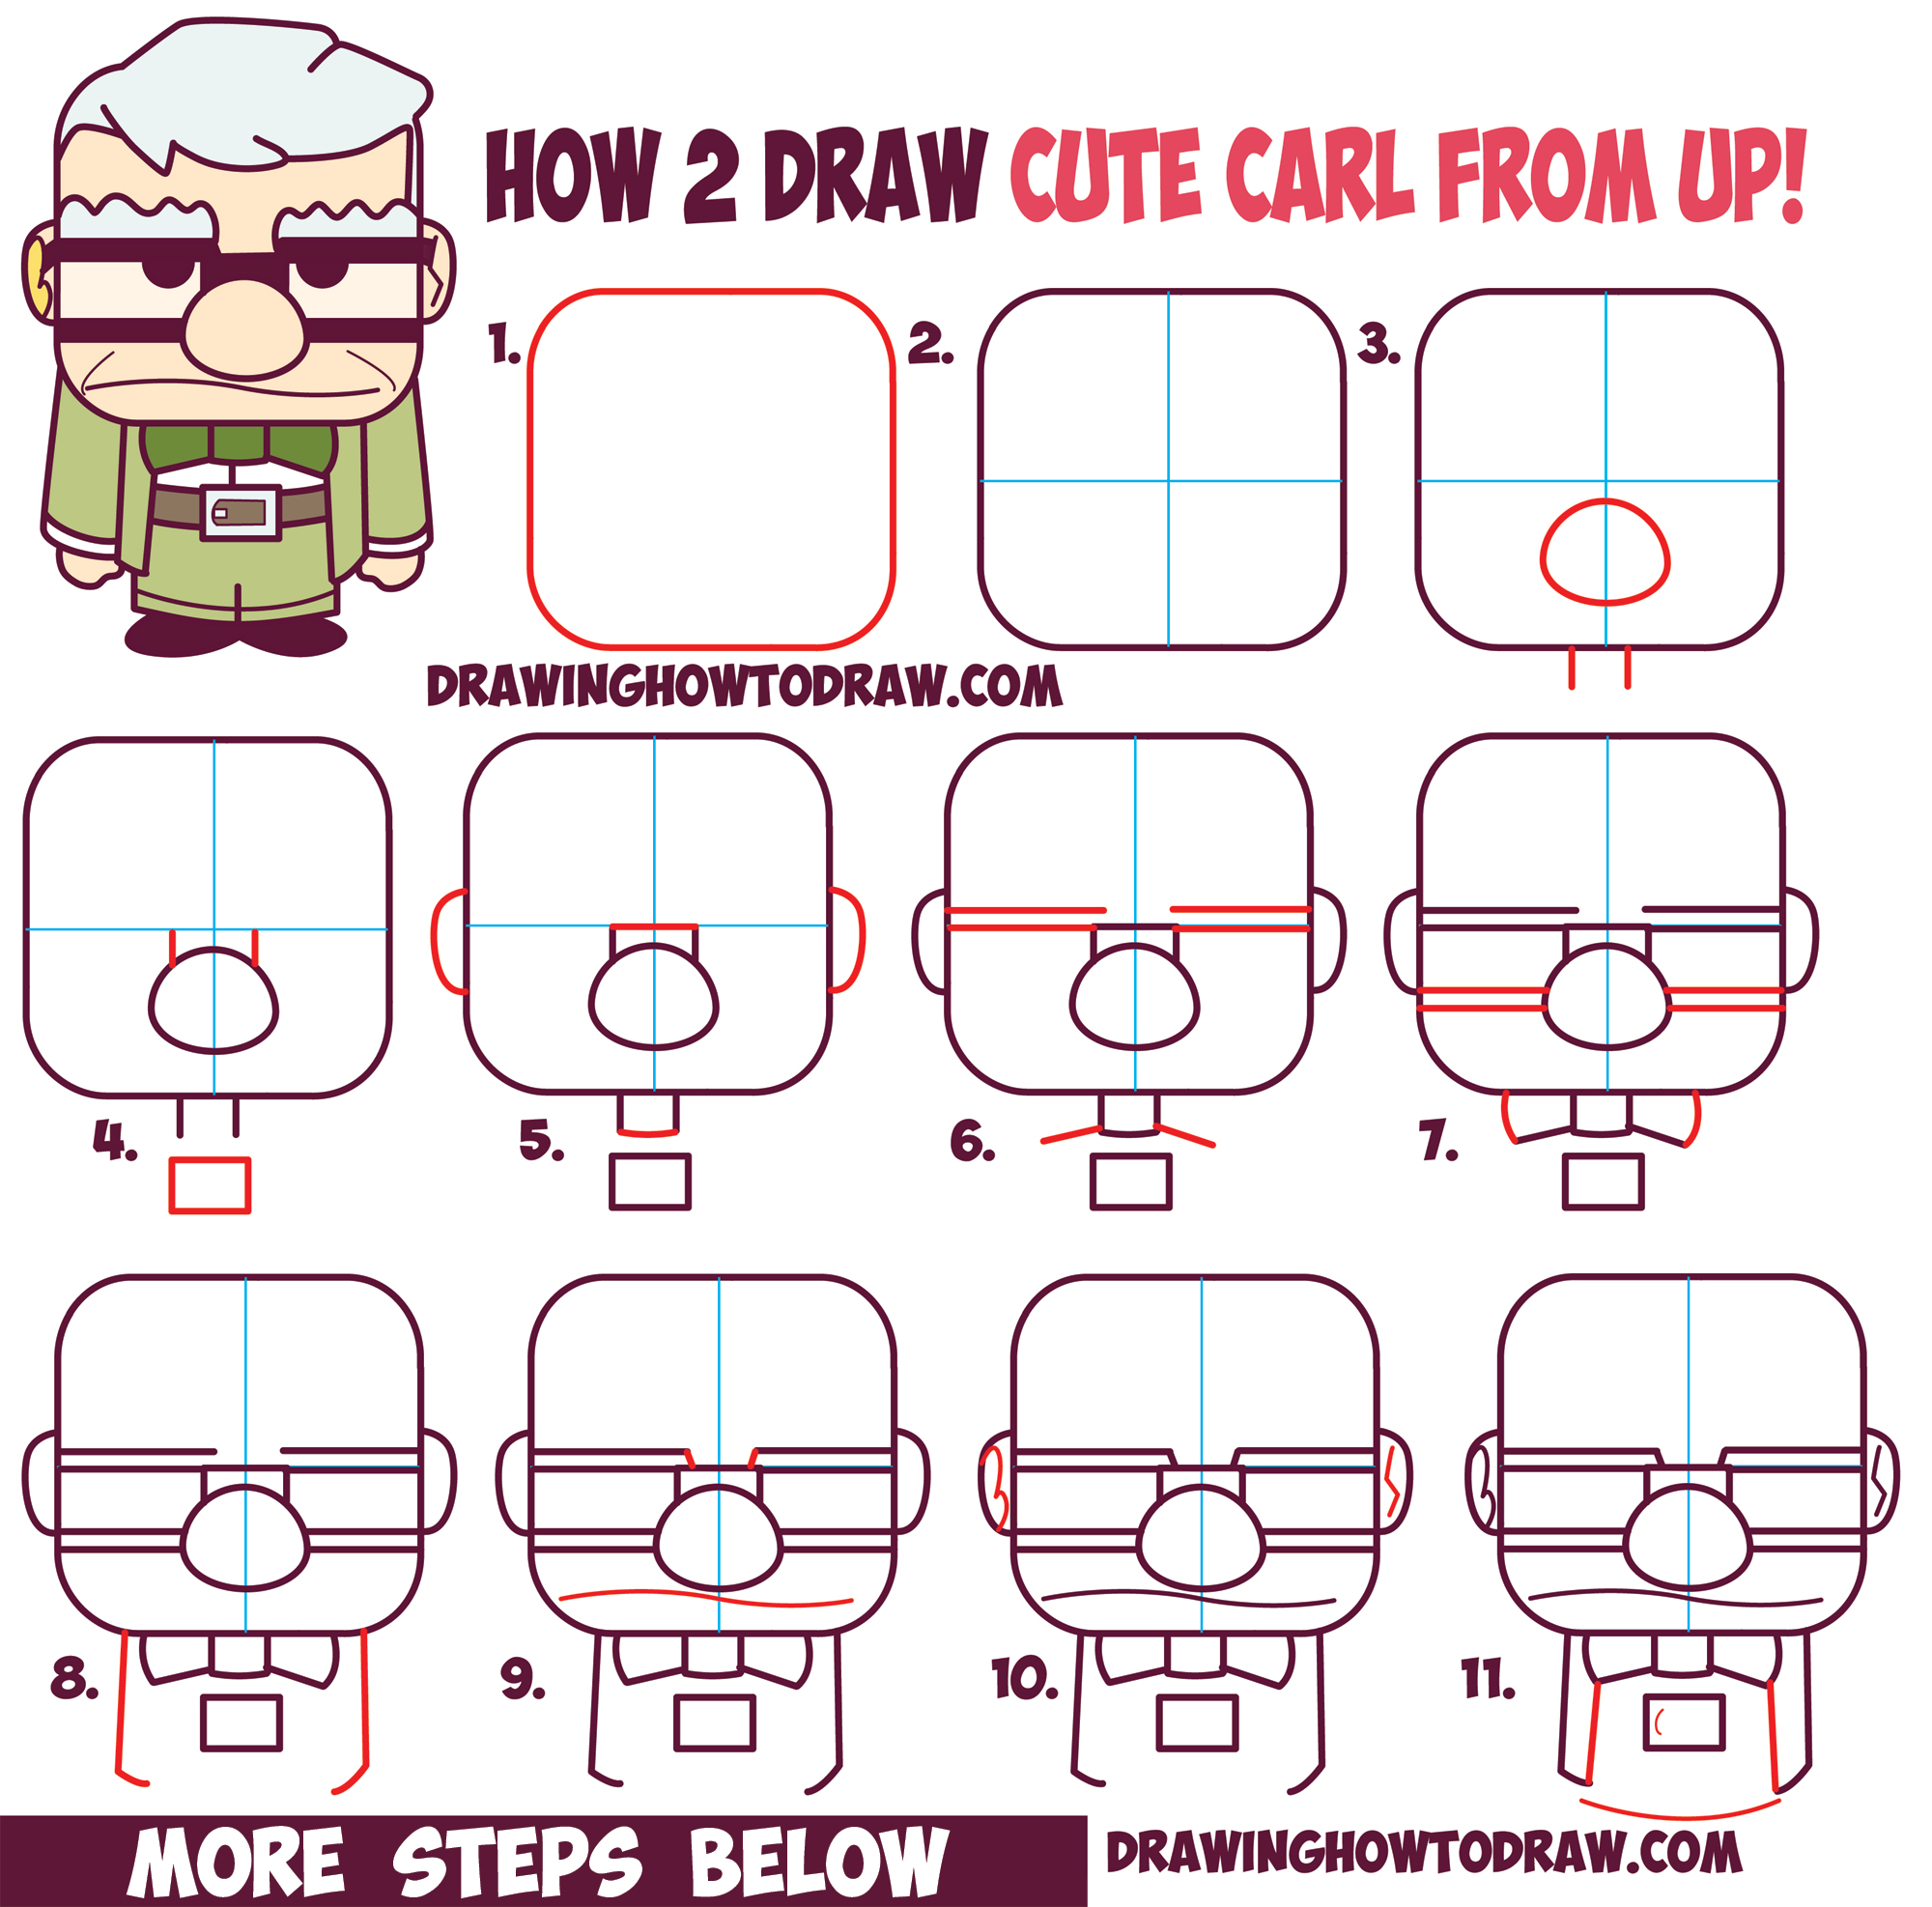 Uncategorized Easy Drawing Tutorials how to draw carl fredricksen the old man from pixars up cute chibi